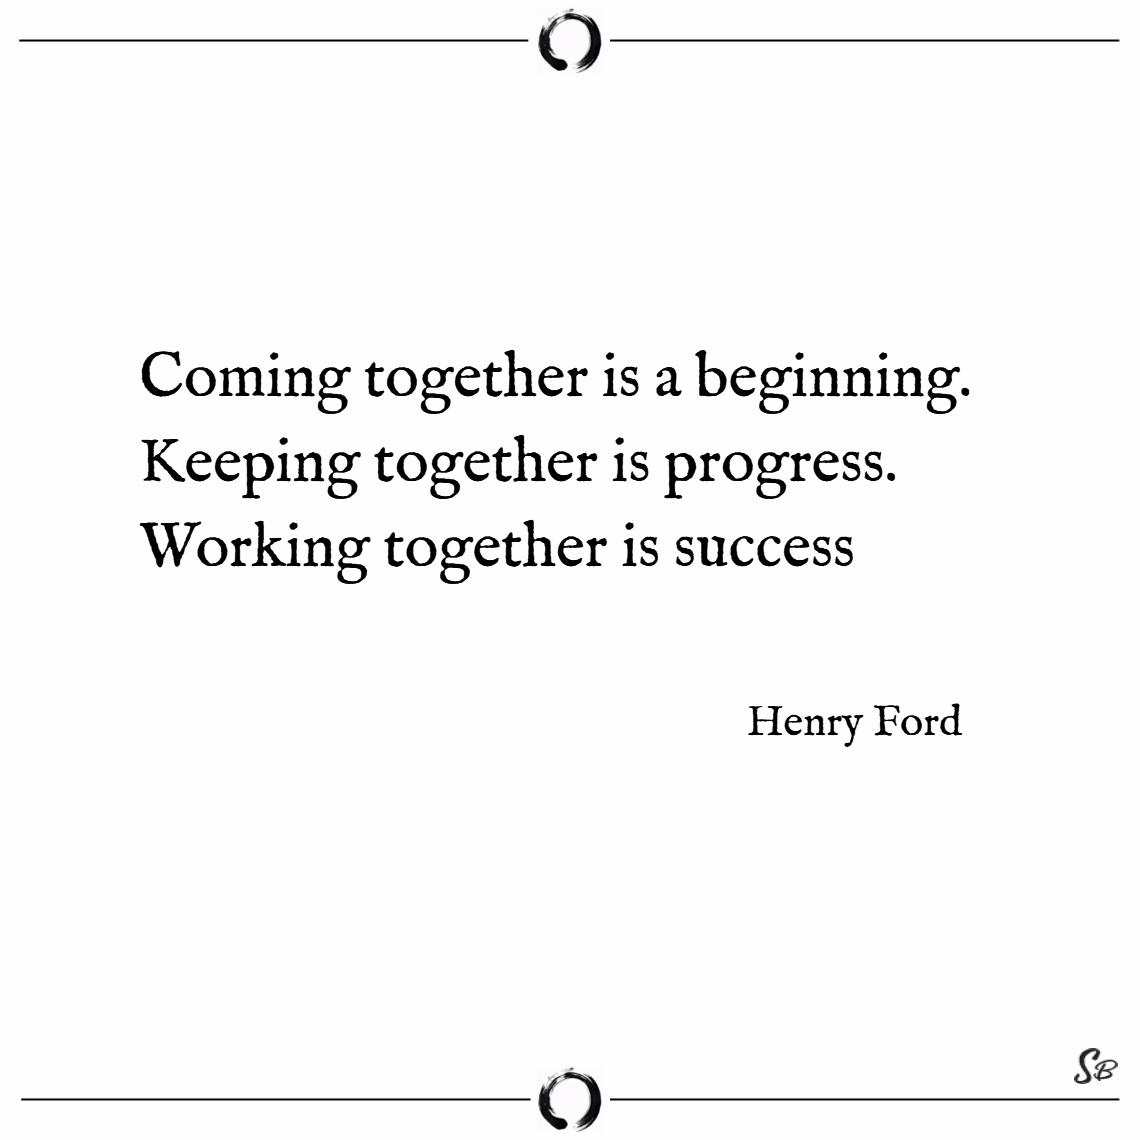 Quotes About Working Together | 31 Teamwork Quotes To Motivate Your Group Spirit Button